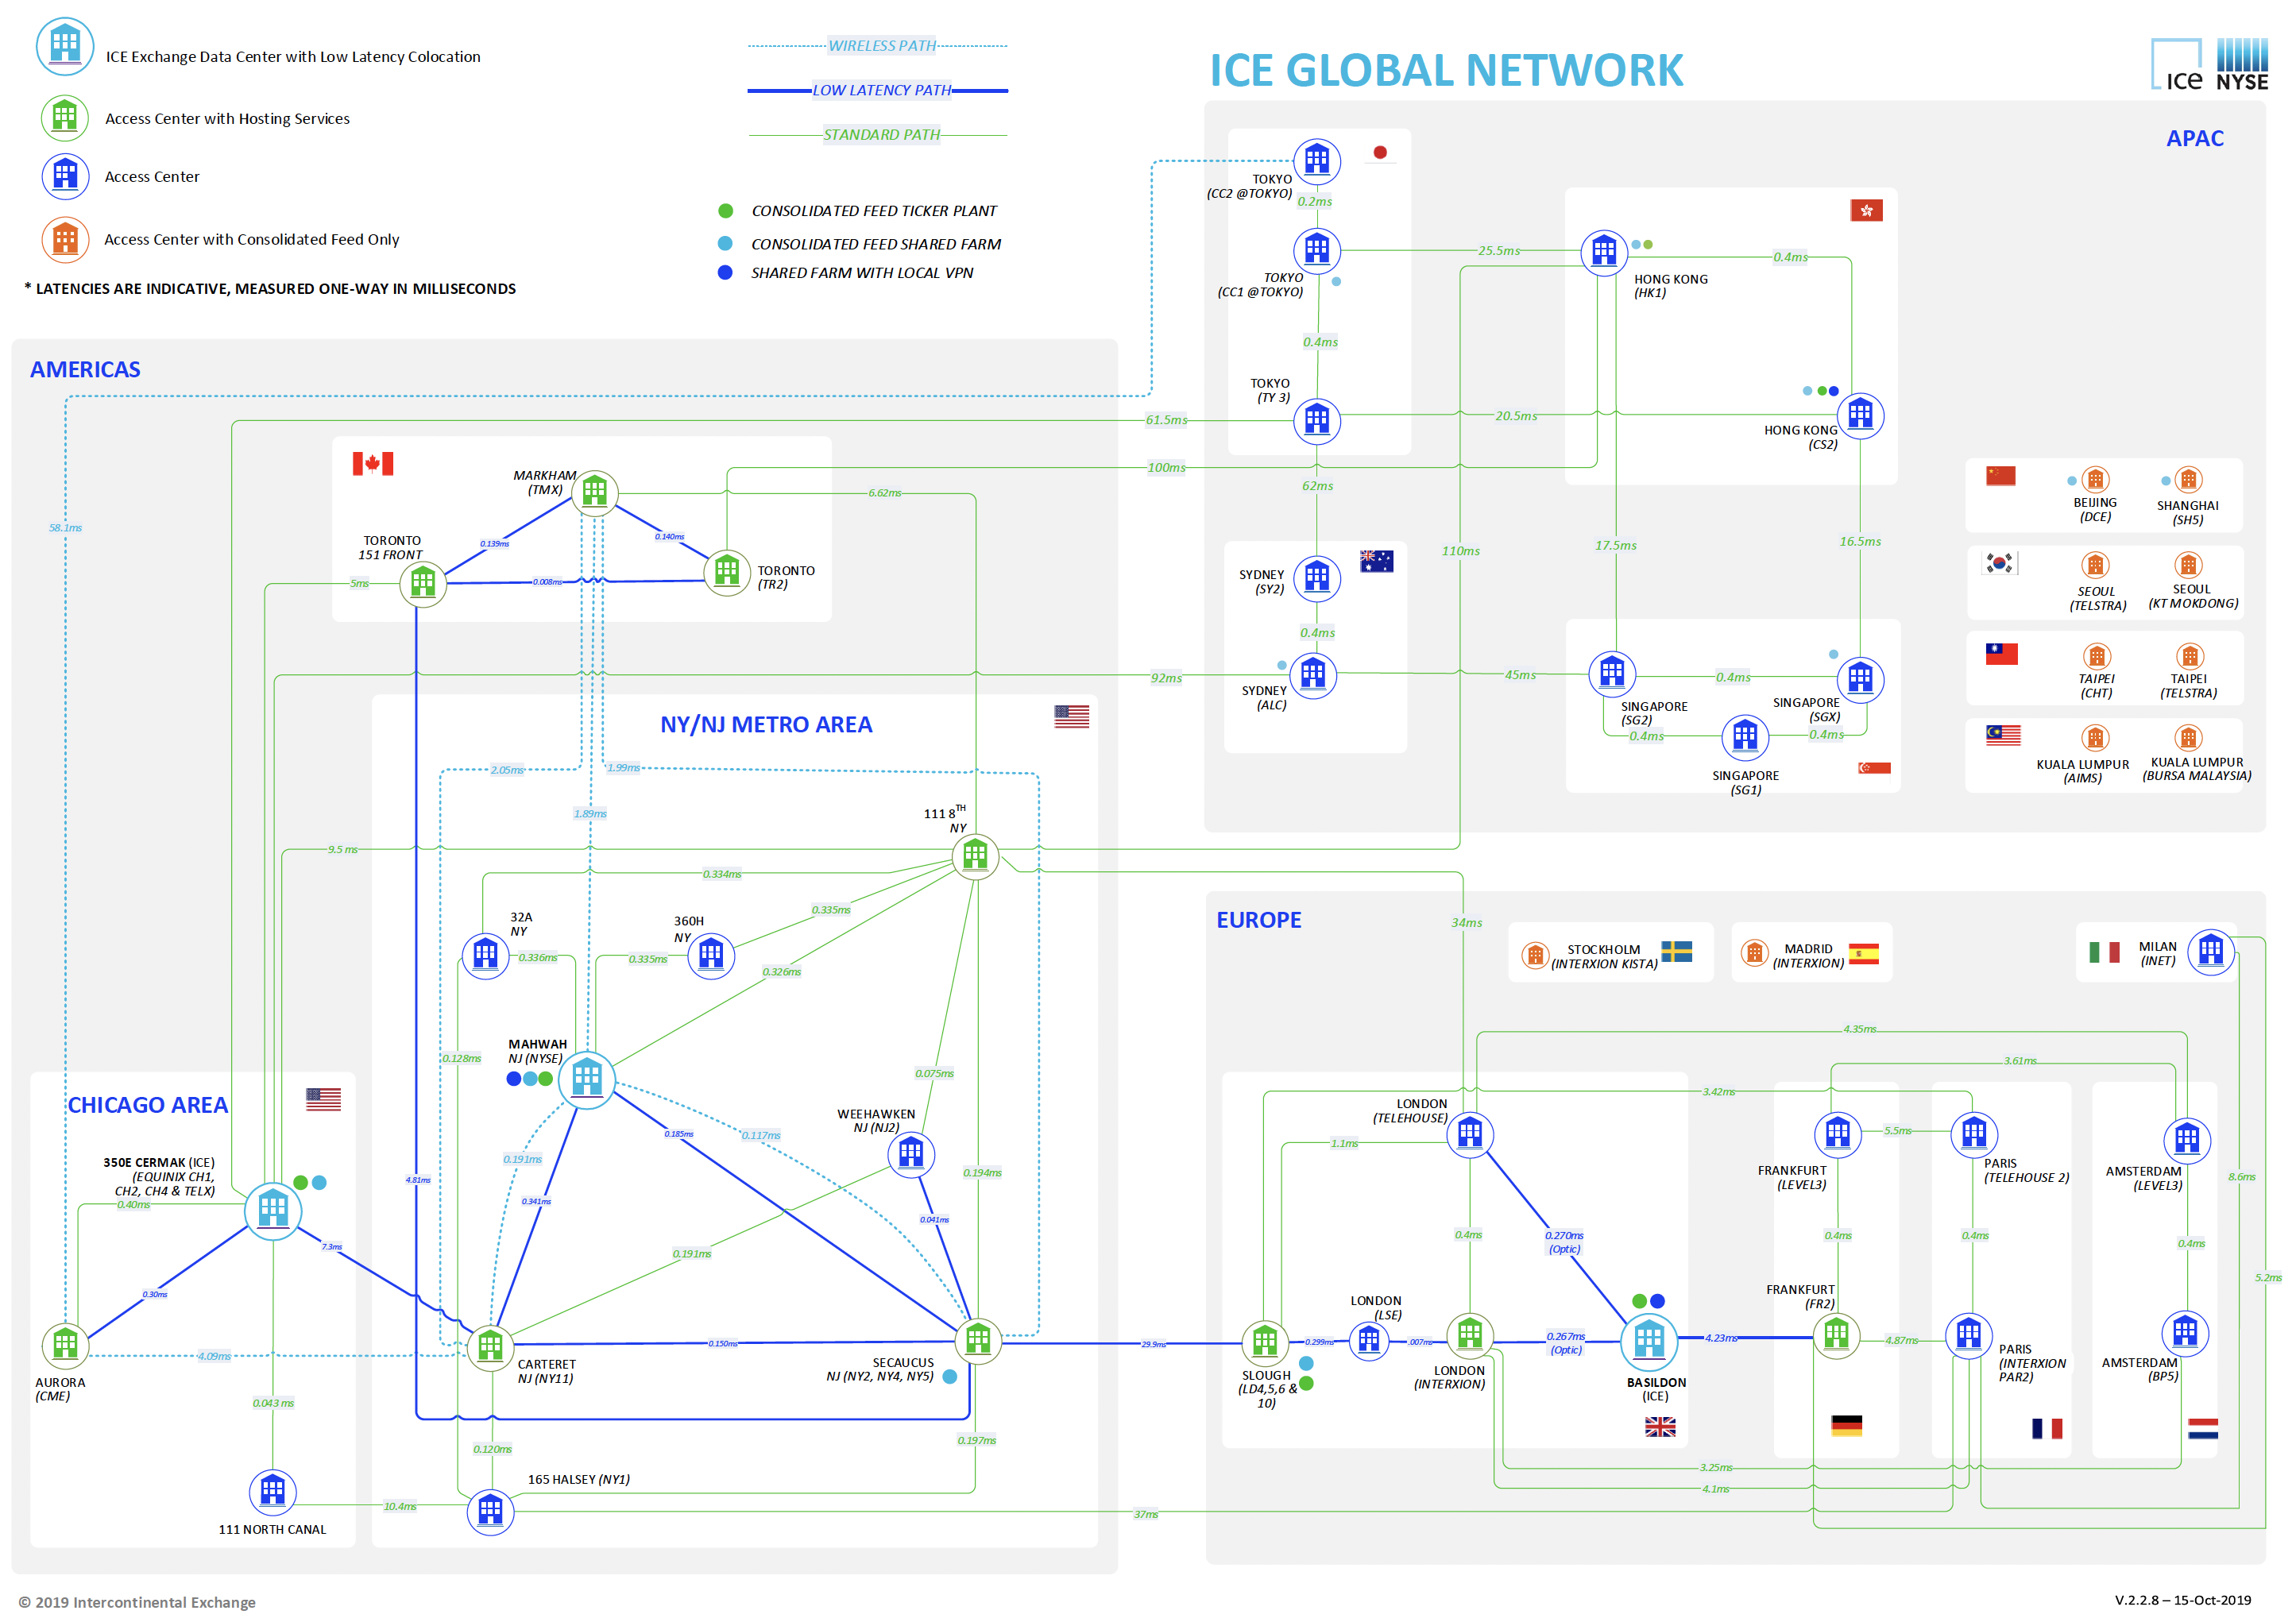 ICE Data Services Network Topology Map Map Network Topology on network world map, network configuration map, network area map, computer network map, network network map, ip network map, network home, network traffic map, network environment map, network hardware map, network design map, basic network map, ntt network map, enterprise network map, logical network map, global network map, network security map, it network map, network routing map, memory map,